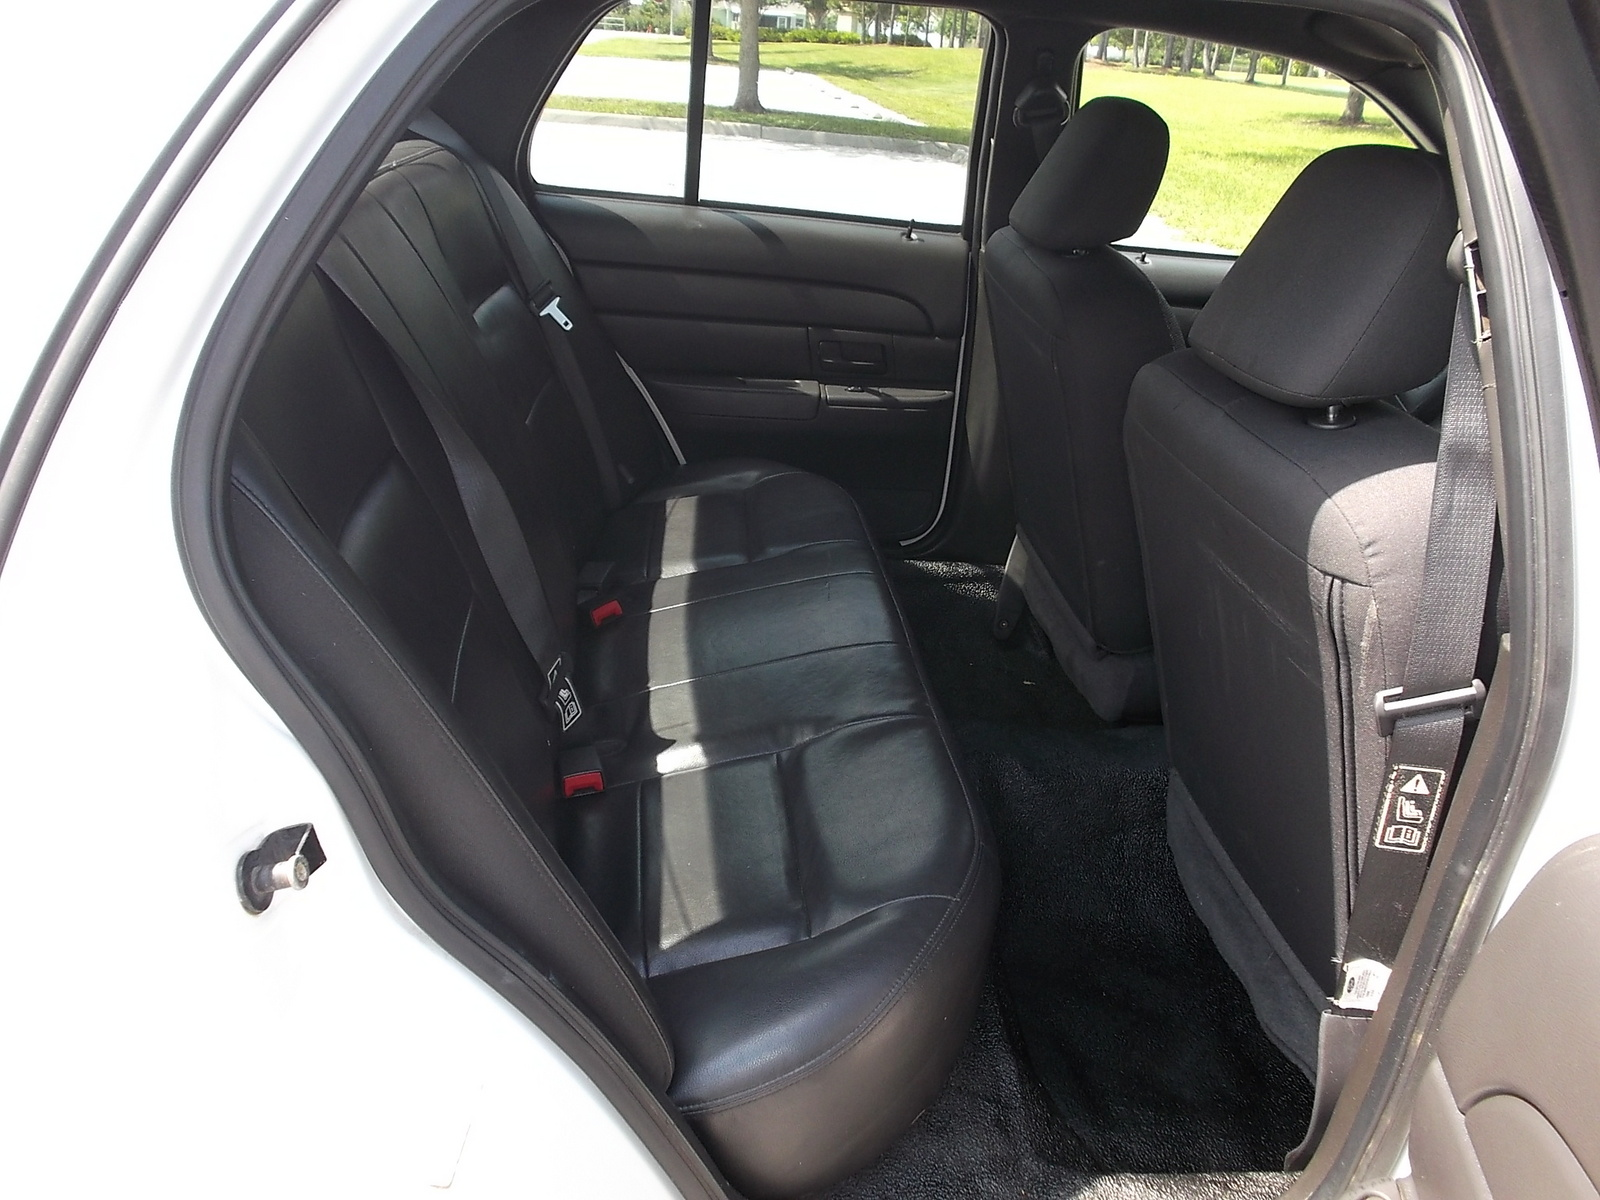 2004 ford crown victoria - interior pictures